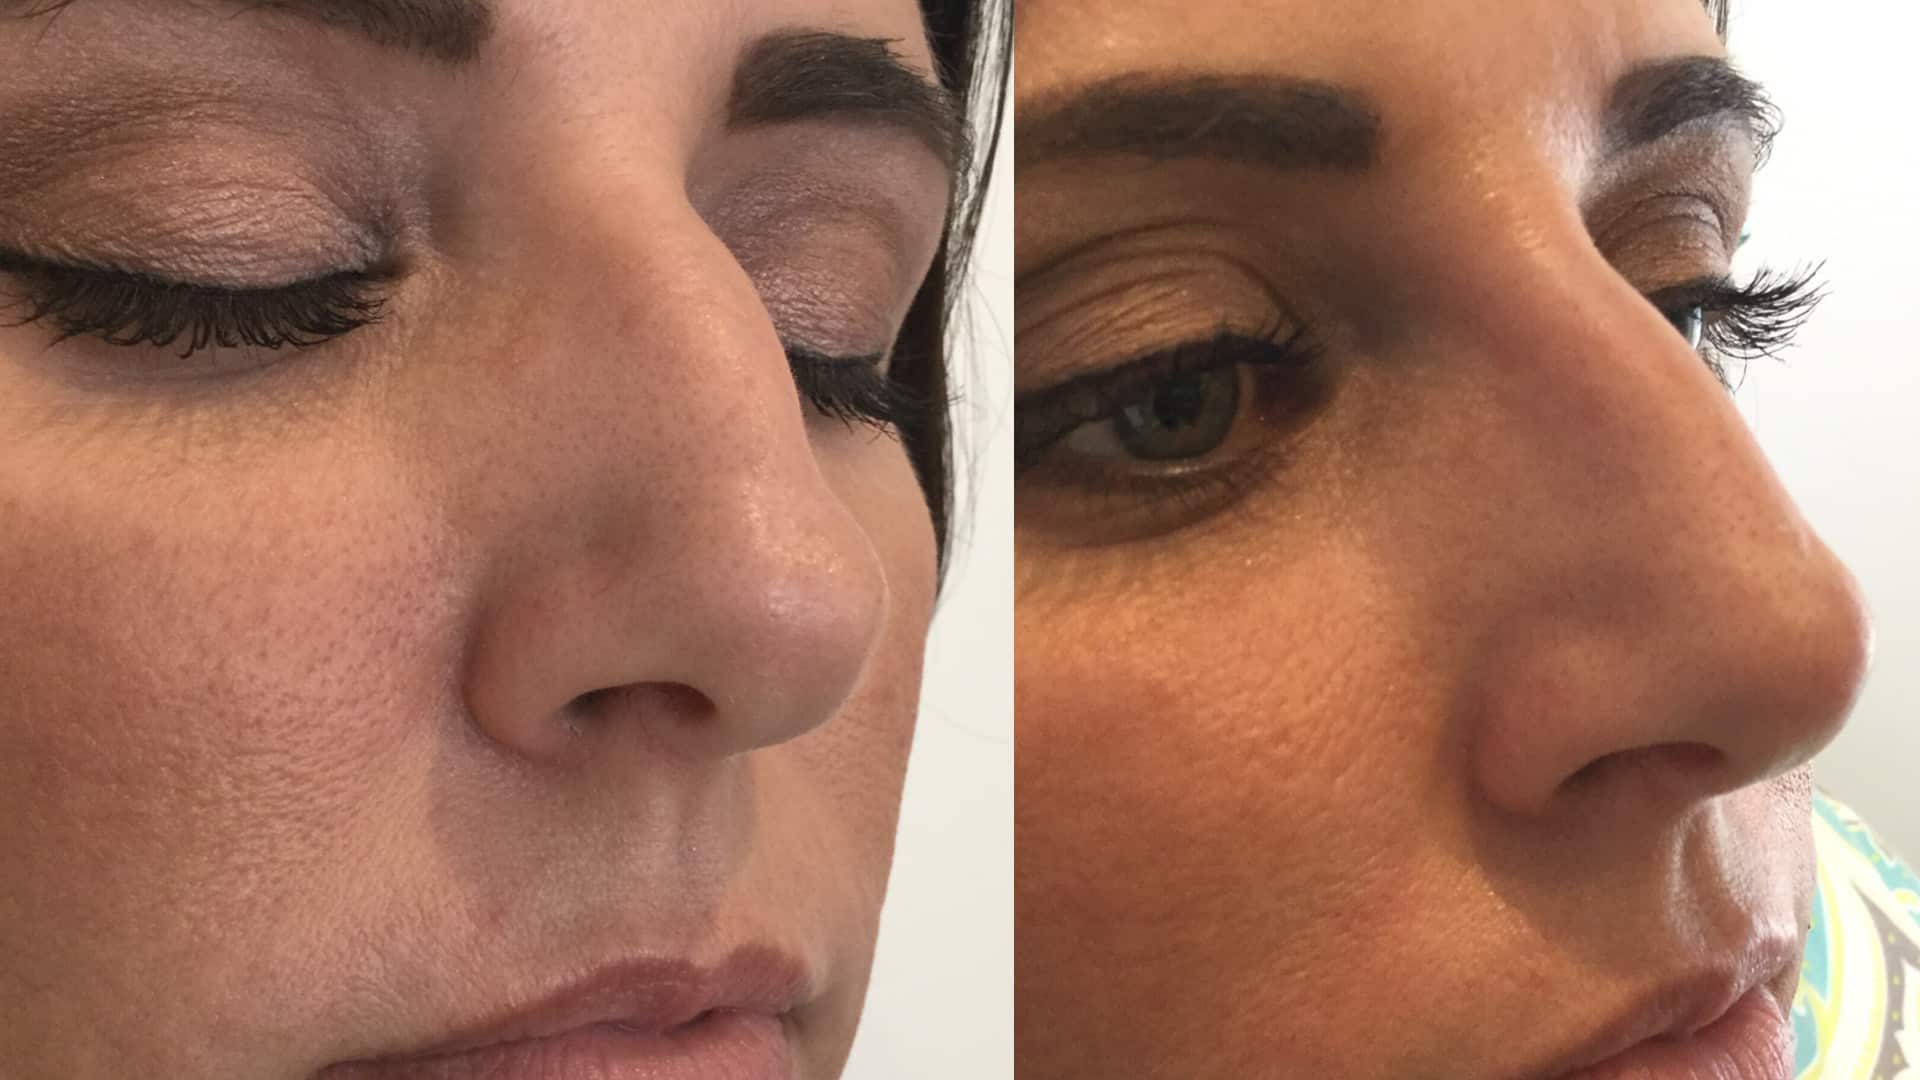 Considering A Nose Job? Consider The 15 Minute Nose Job. We Use Dermal Fillers To Shape And Contour Your Nose In A Simple In Office Procedure. No Downtime.